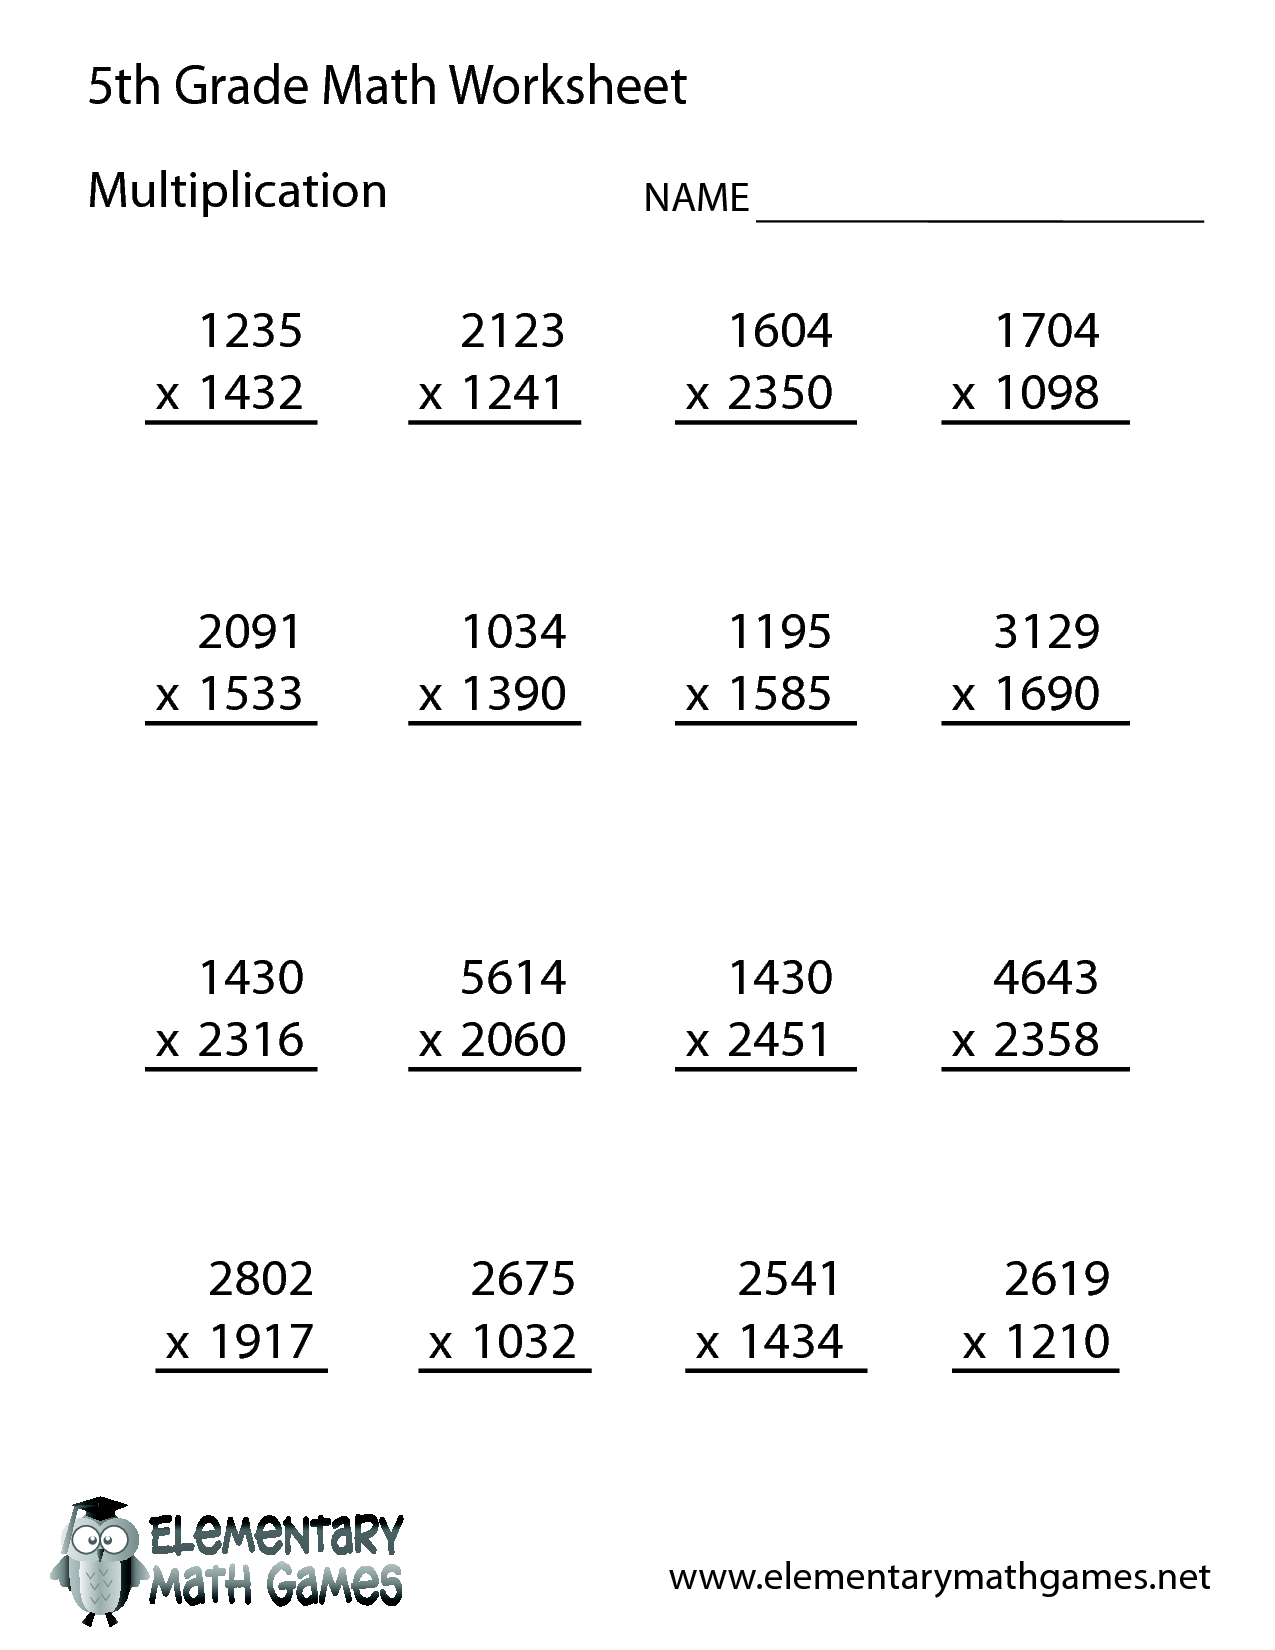 free math worksheets for 5th grade 5th grade math worksheet